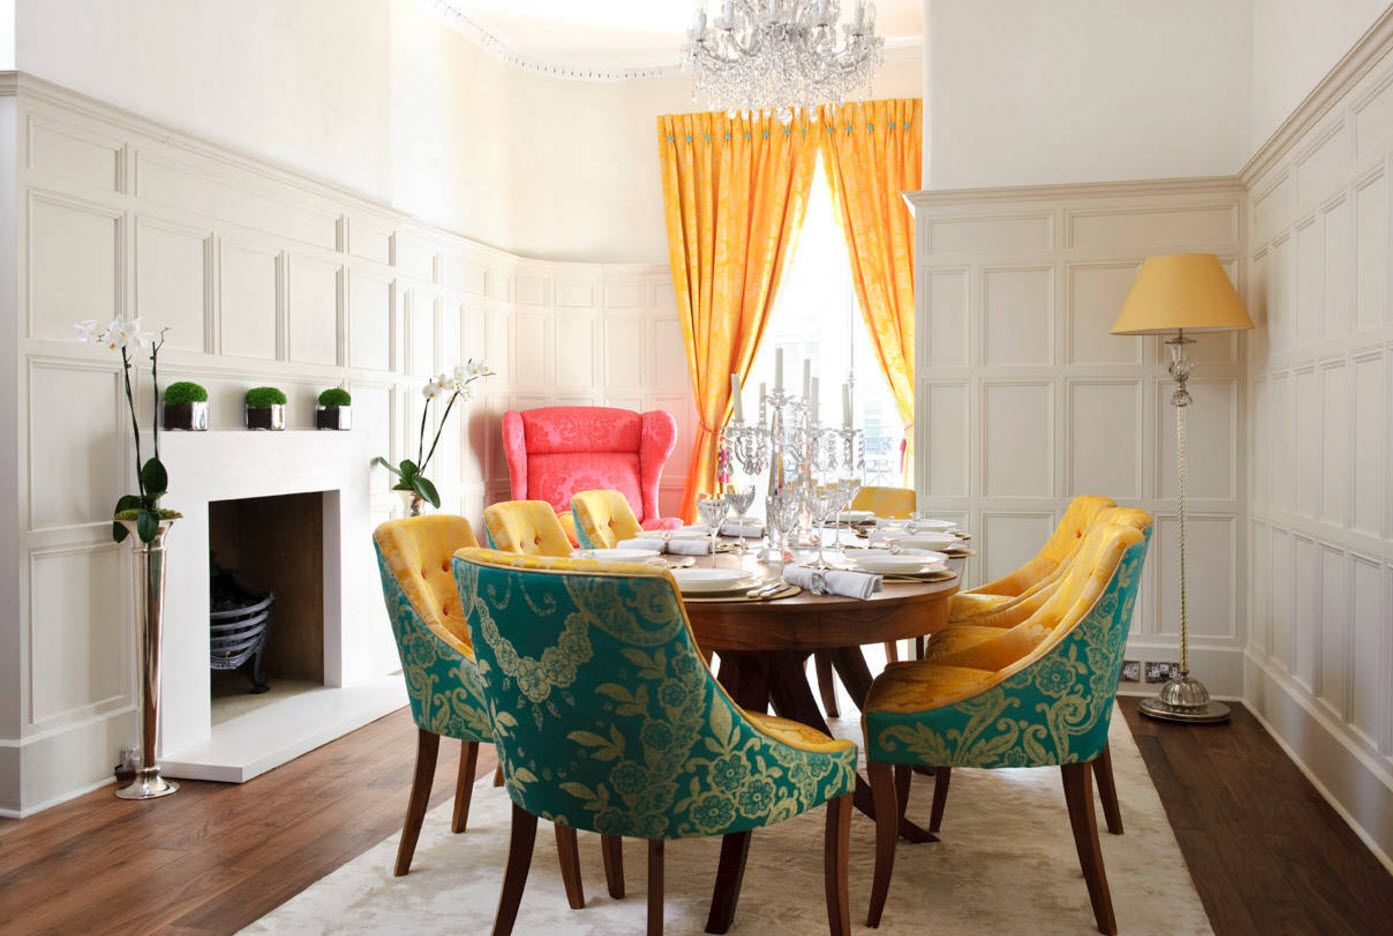 Dining Zone Table and Chairs: Practical and Aesthetic Composition. Picturesque color combination and tons of light